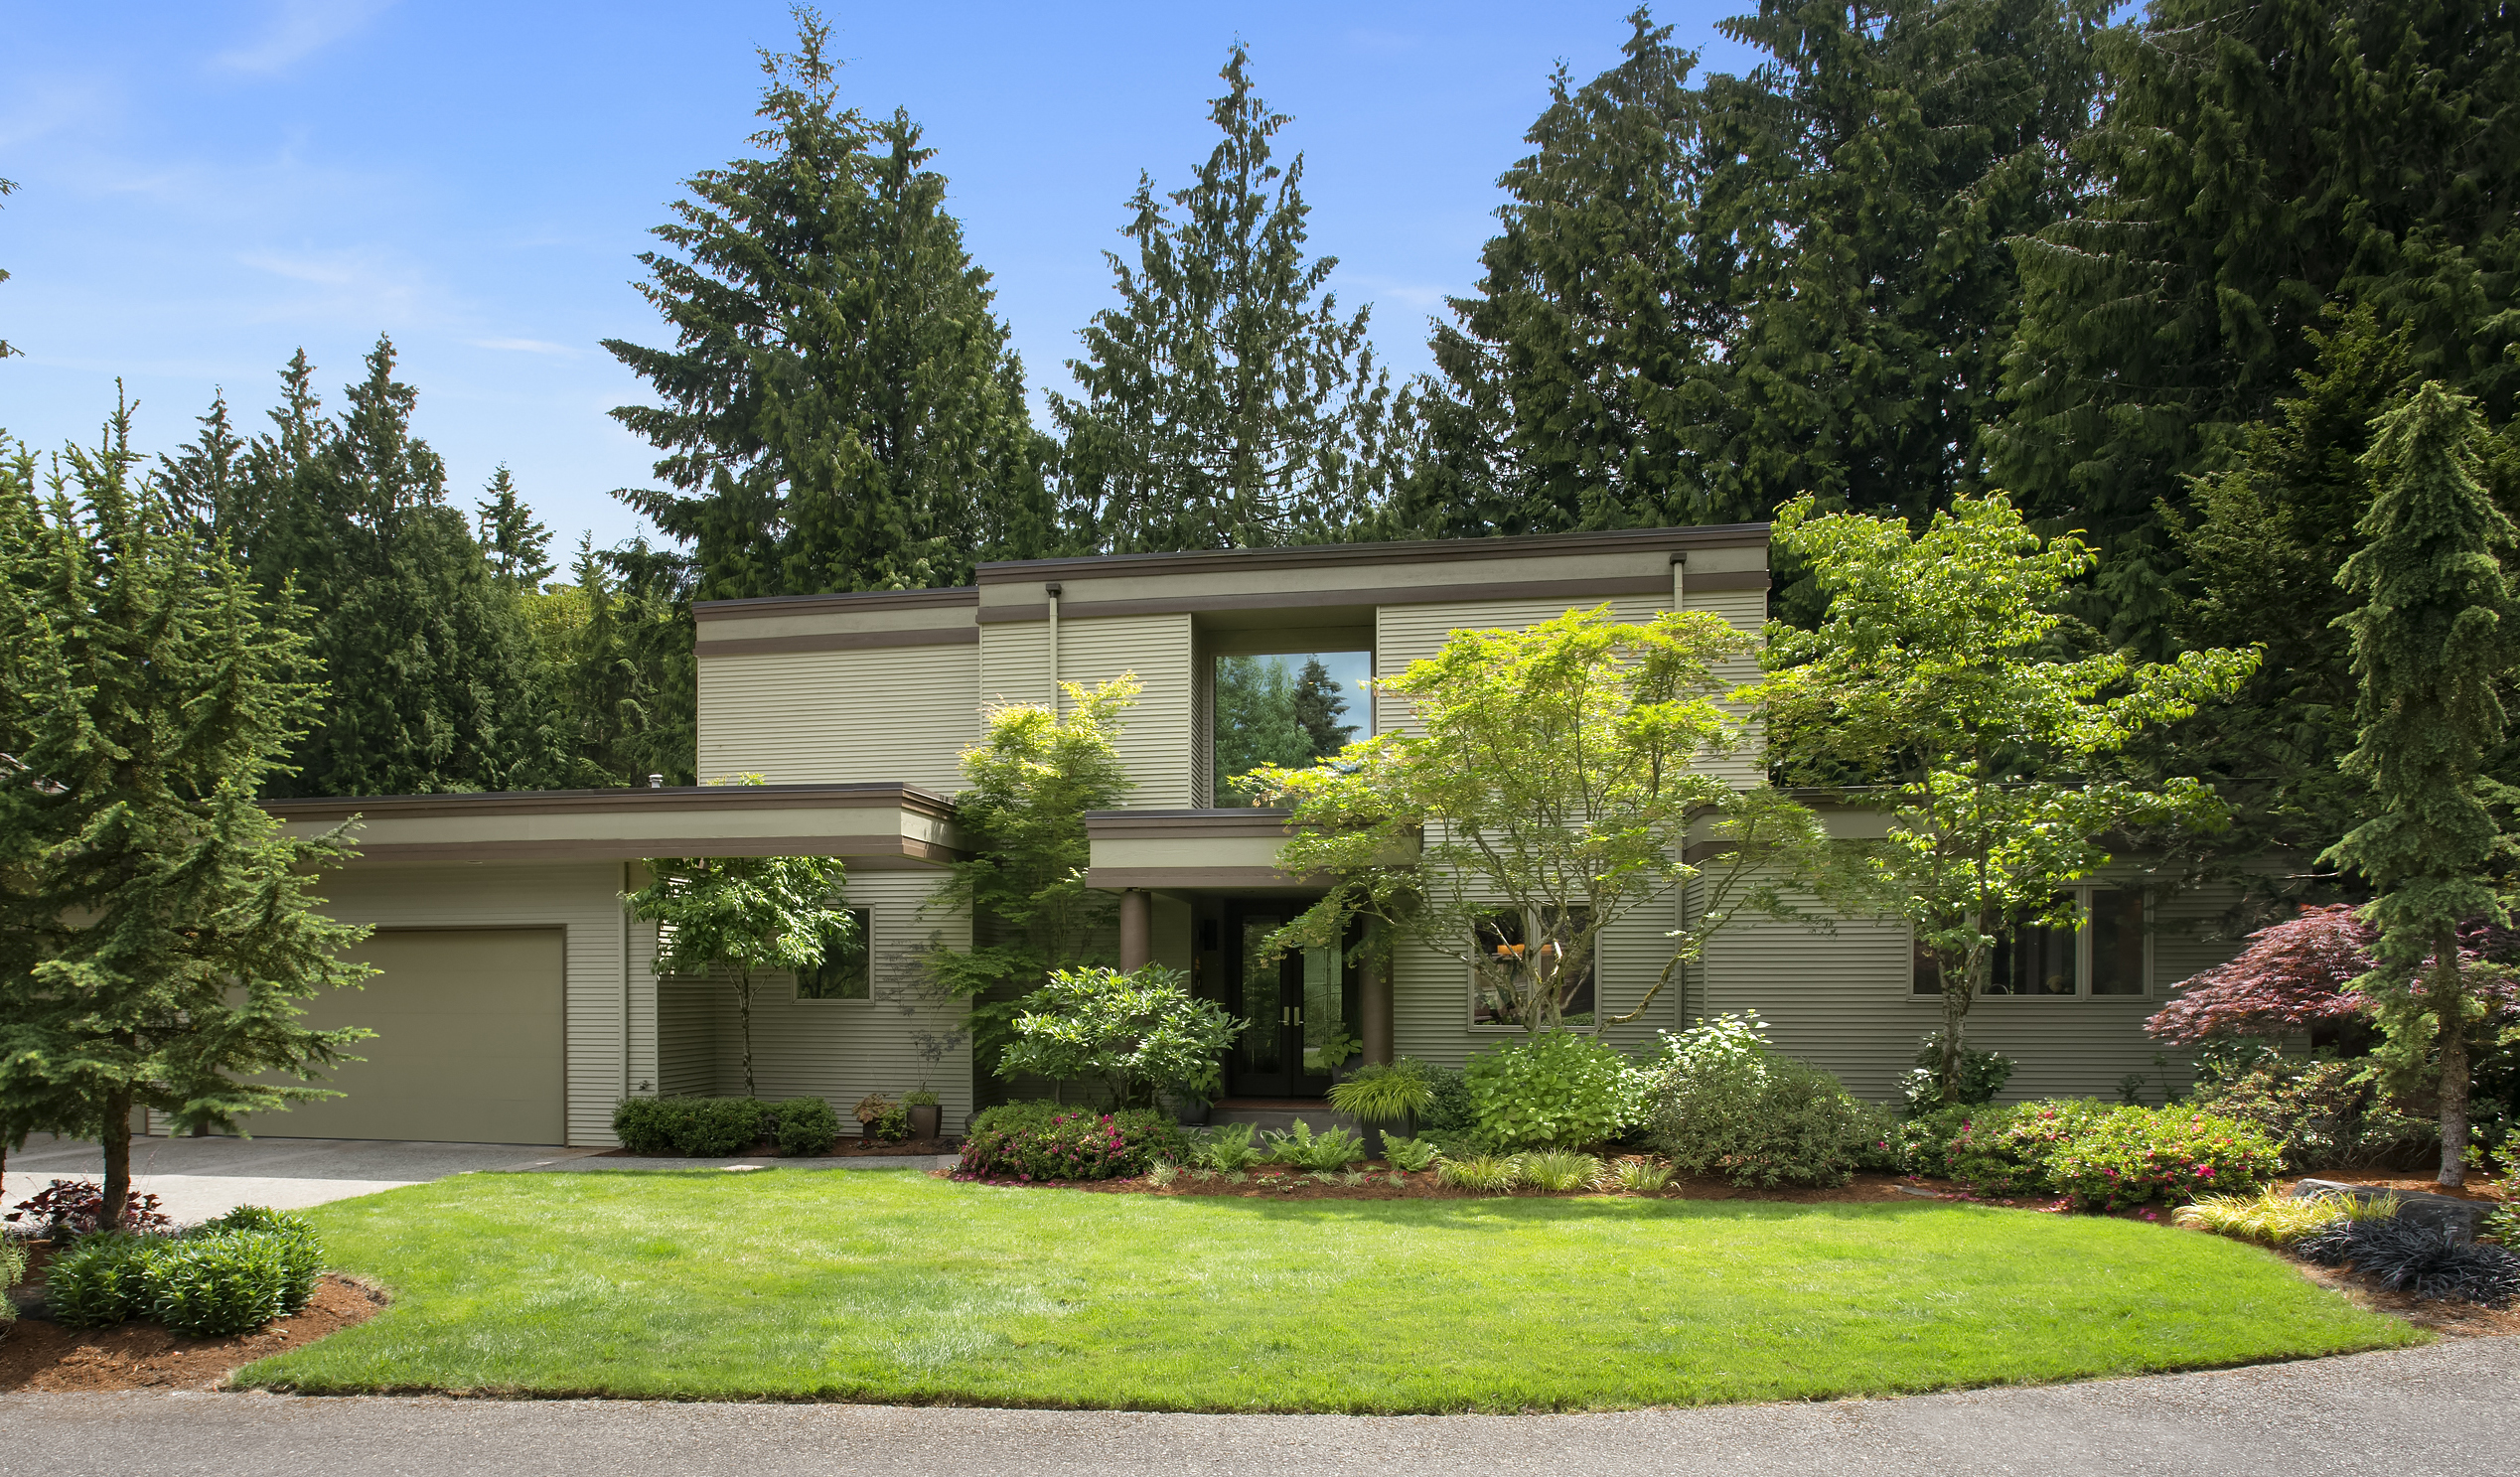 Vivienda unifamiliar por un Venta en Sahalee Country Club 21215 NE 35th Lane Sammamish, Washington, 98074 Estados Unidos